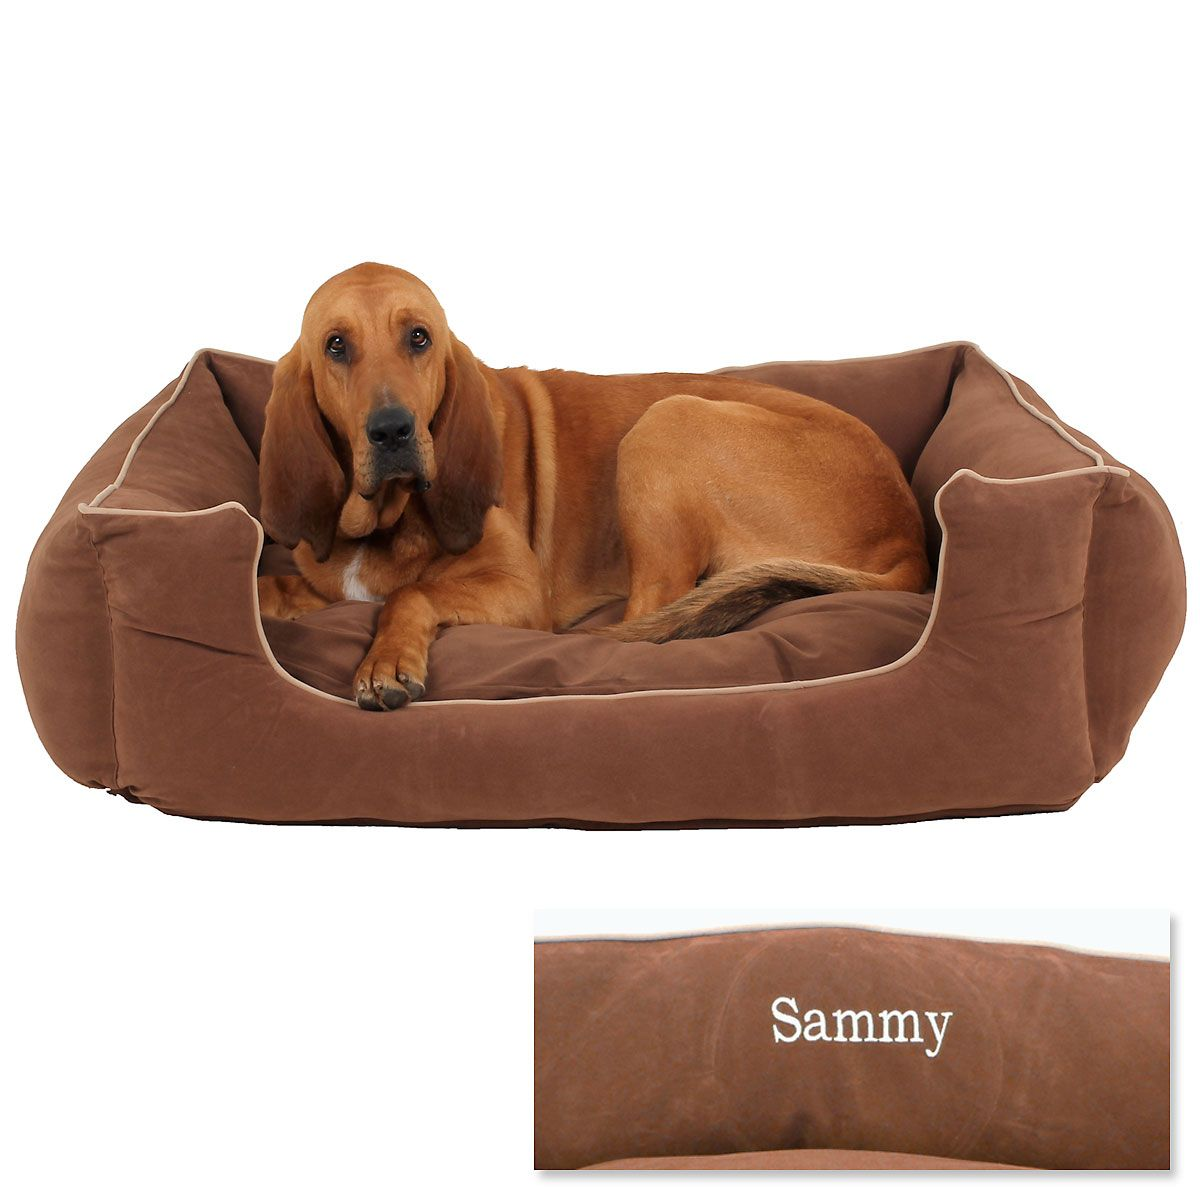 X-Large Low Profile Pet Bed - Chocolate